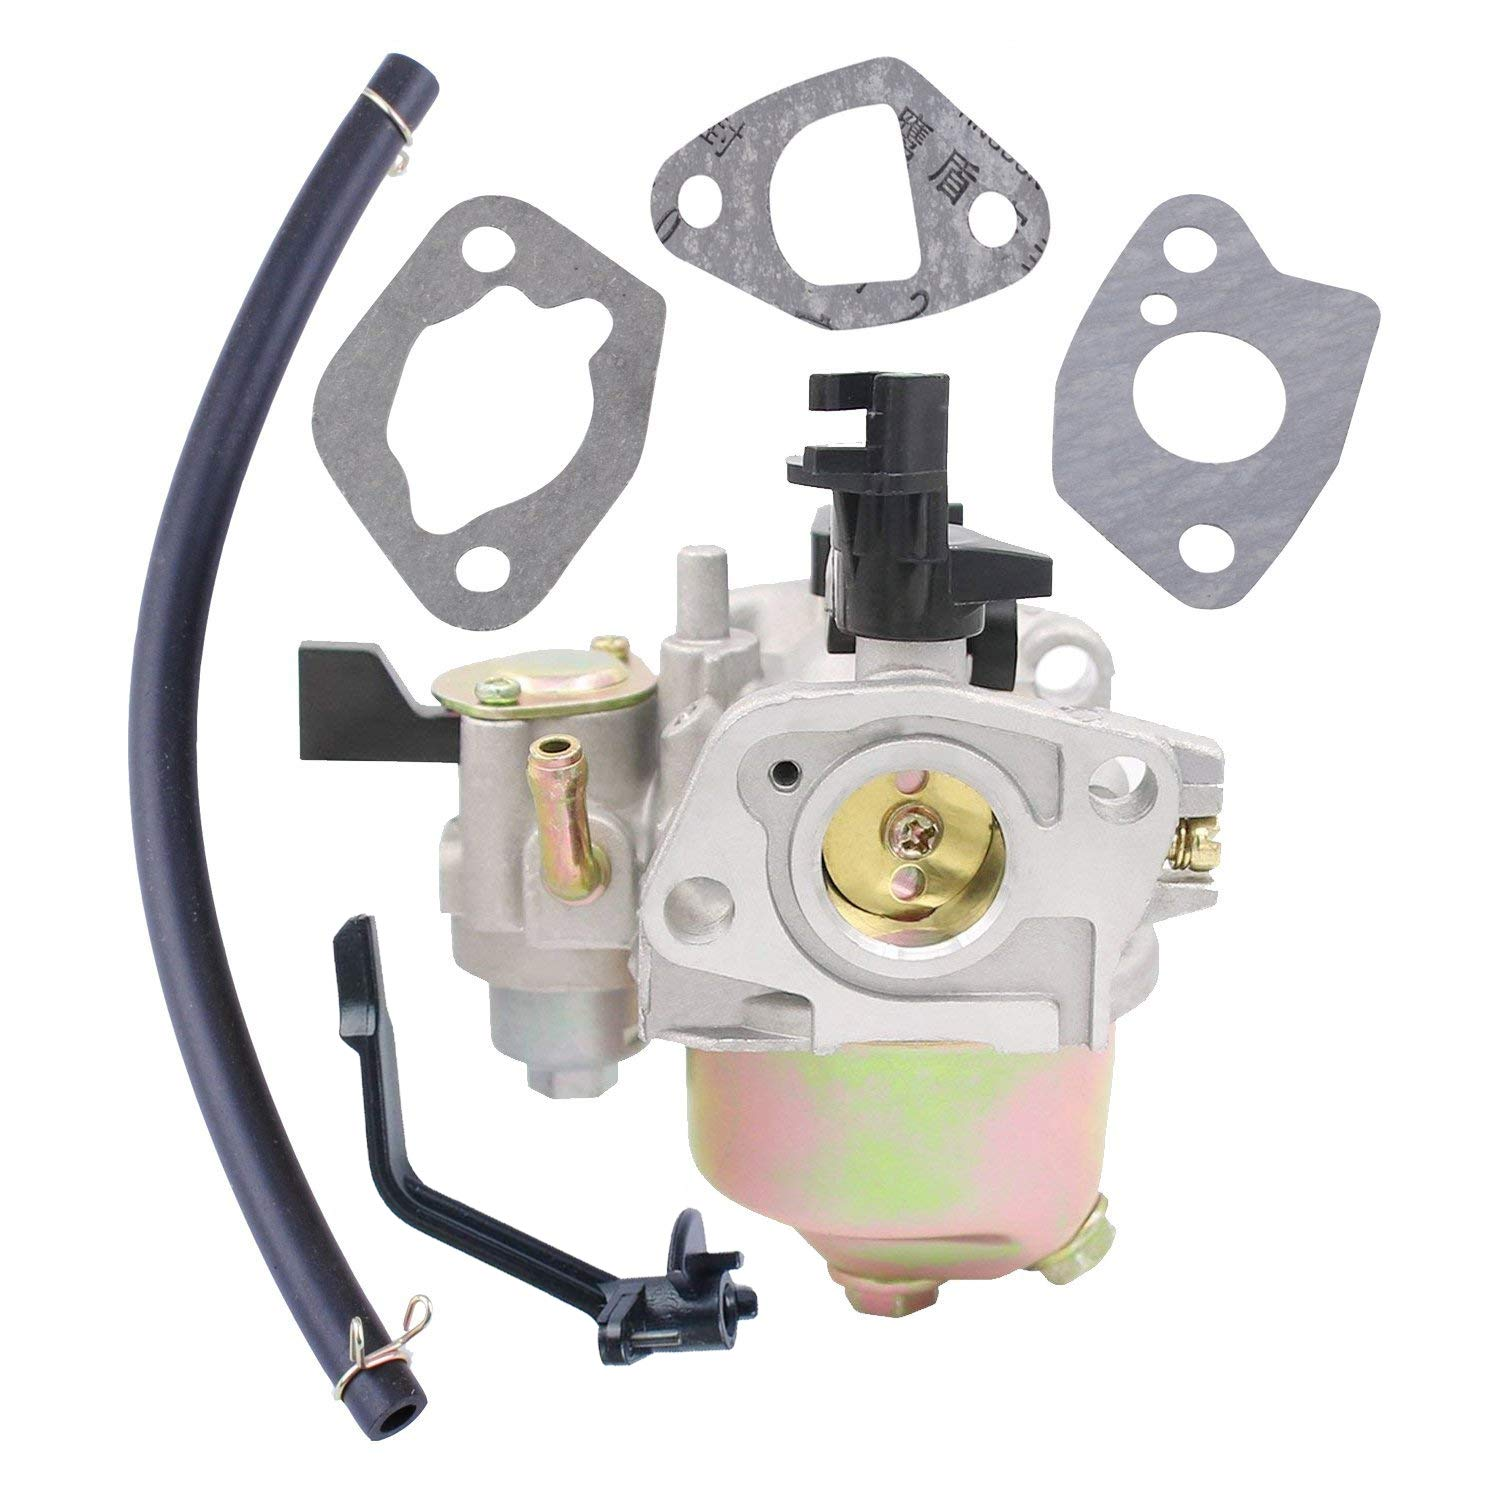 Poweka 196CC Carburetor Kit for Mini Baja 196cc 163cc 5 5hp 6 5hp Baja  Warrior Heat Mb165 Mb200 Mini Bike Replace 66015 66571 69086 69738 98963  with